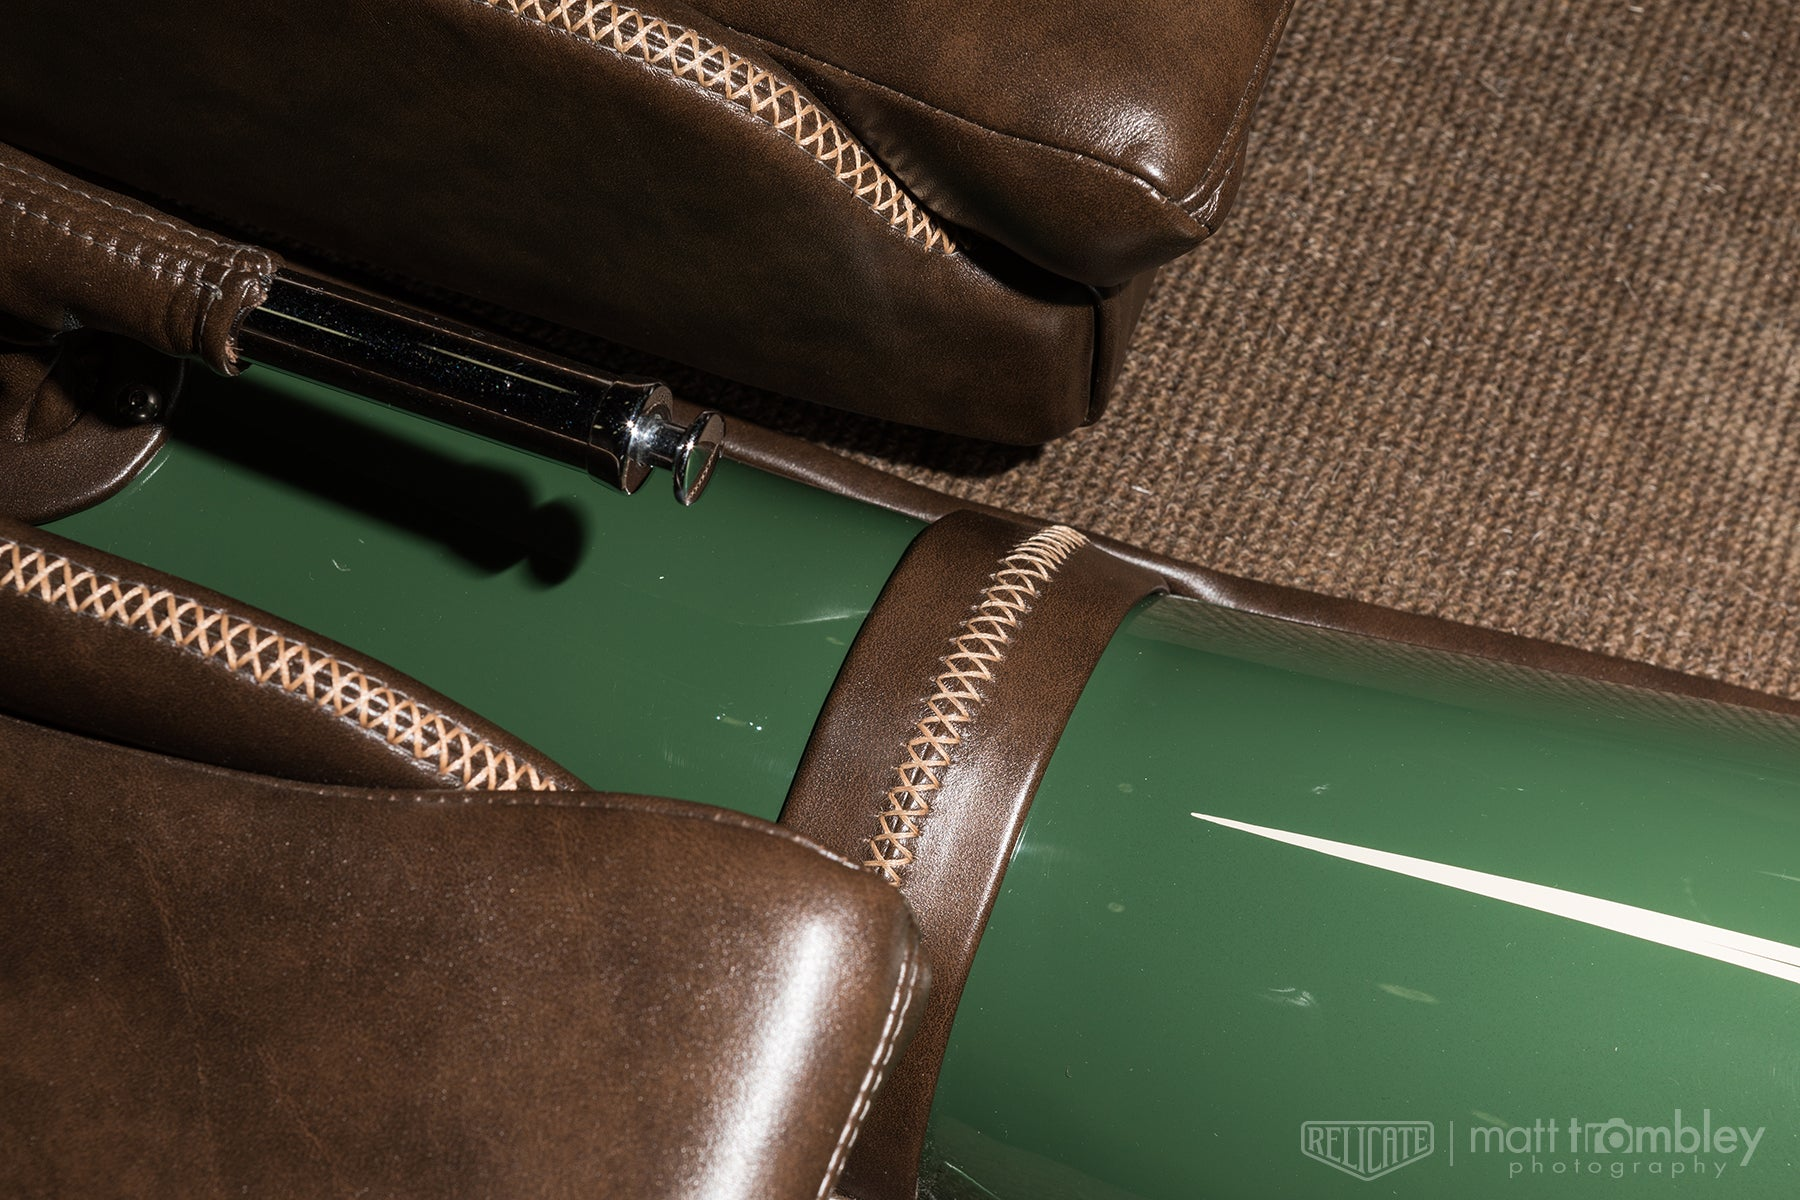 Relicate Antiqued Mocha Leather 1927 Ford Model T leather interior German Square Weave Automotive Carpet 503 Brown